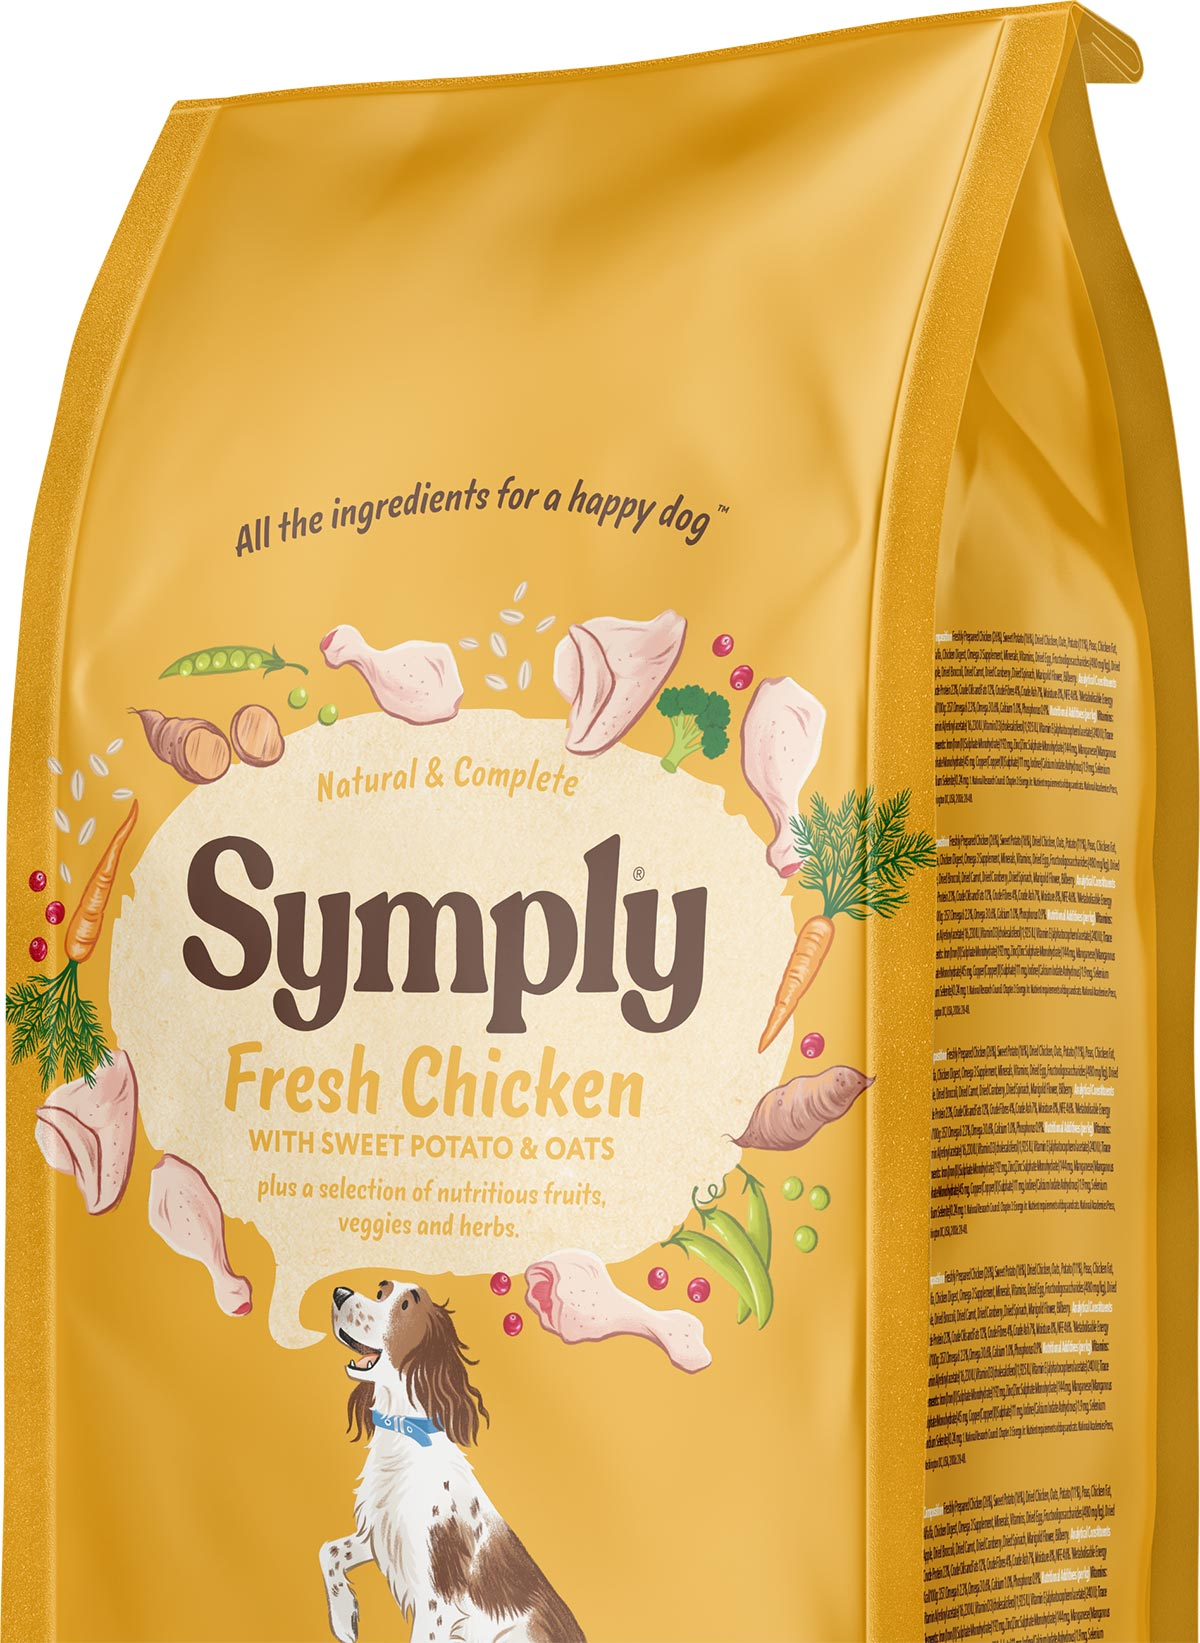 Symply dry food recyclable packaging